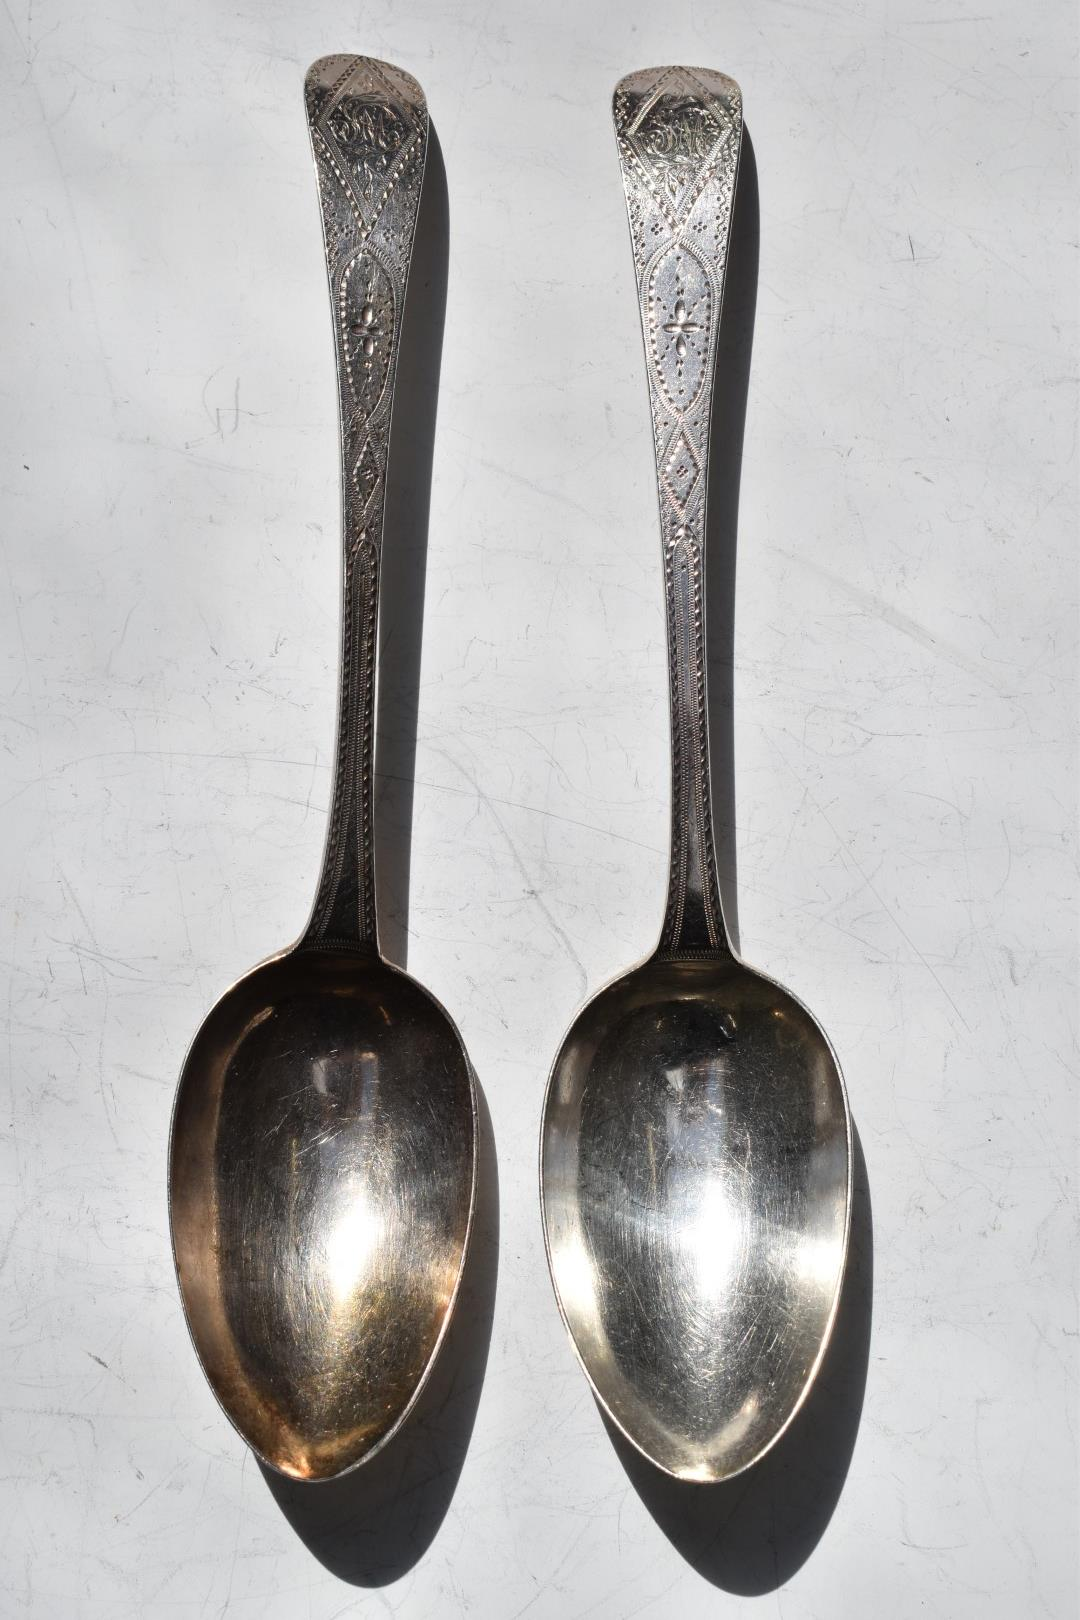 Pair of Georgian bright cut hallmarked silver table spoons, London 1791, makerGeorge Gray, length